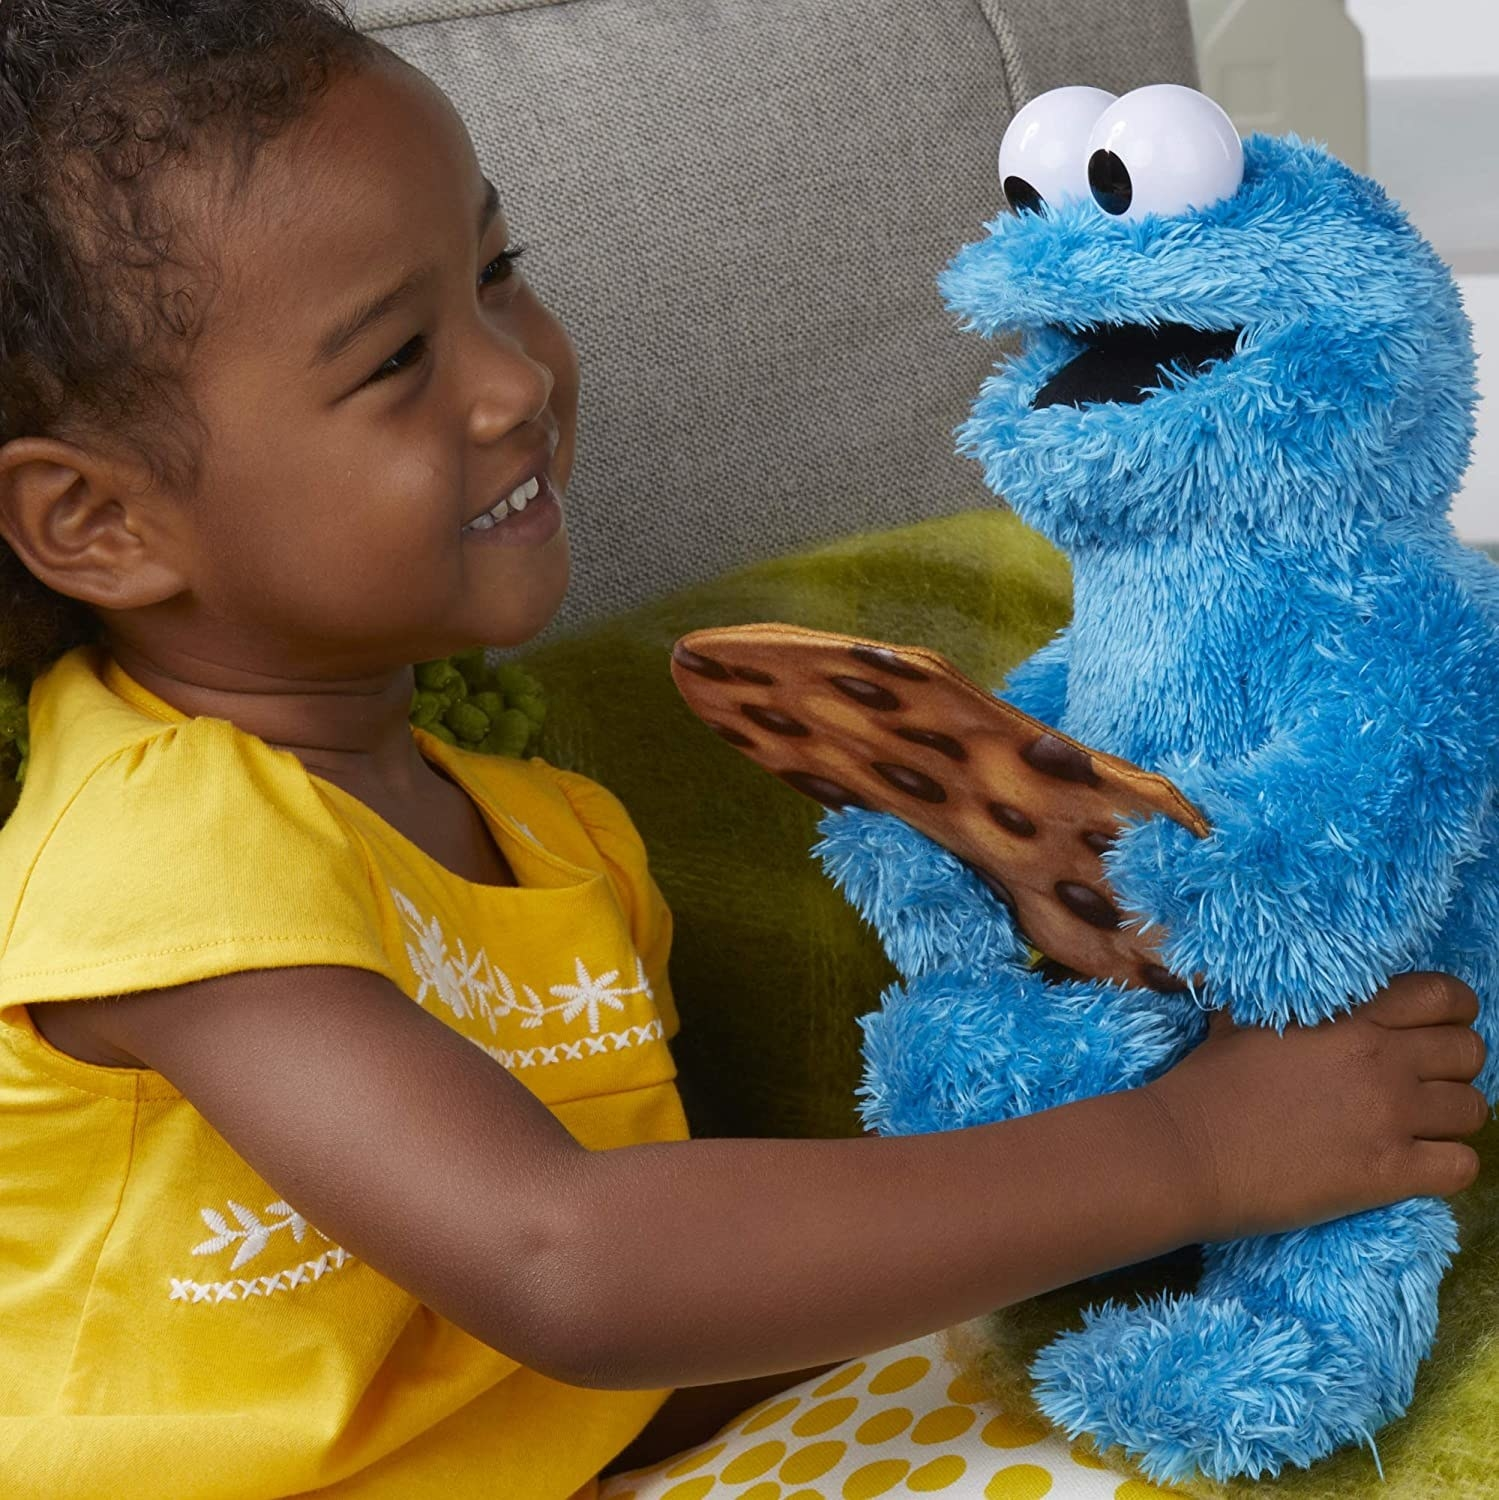 Child holding Peekaboo Cookie Monster doll